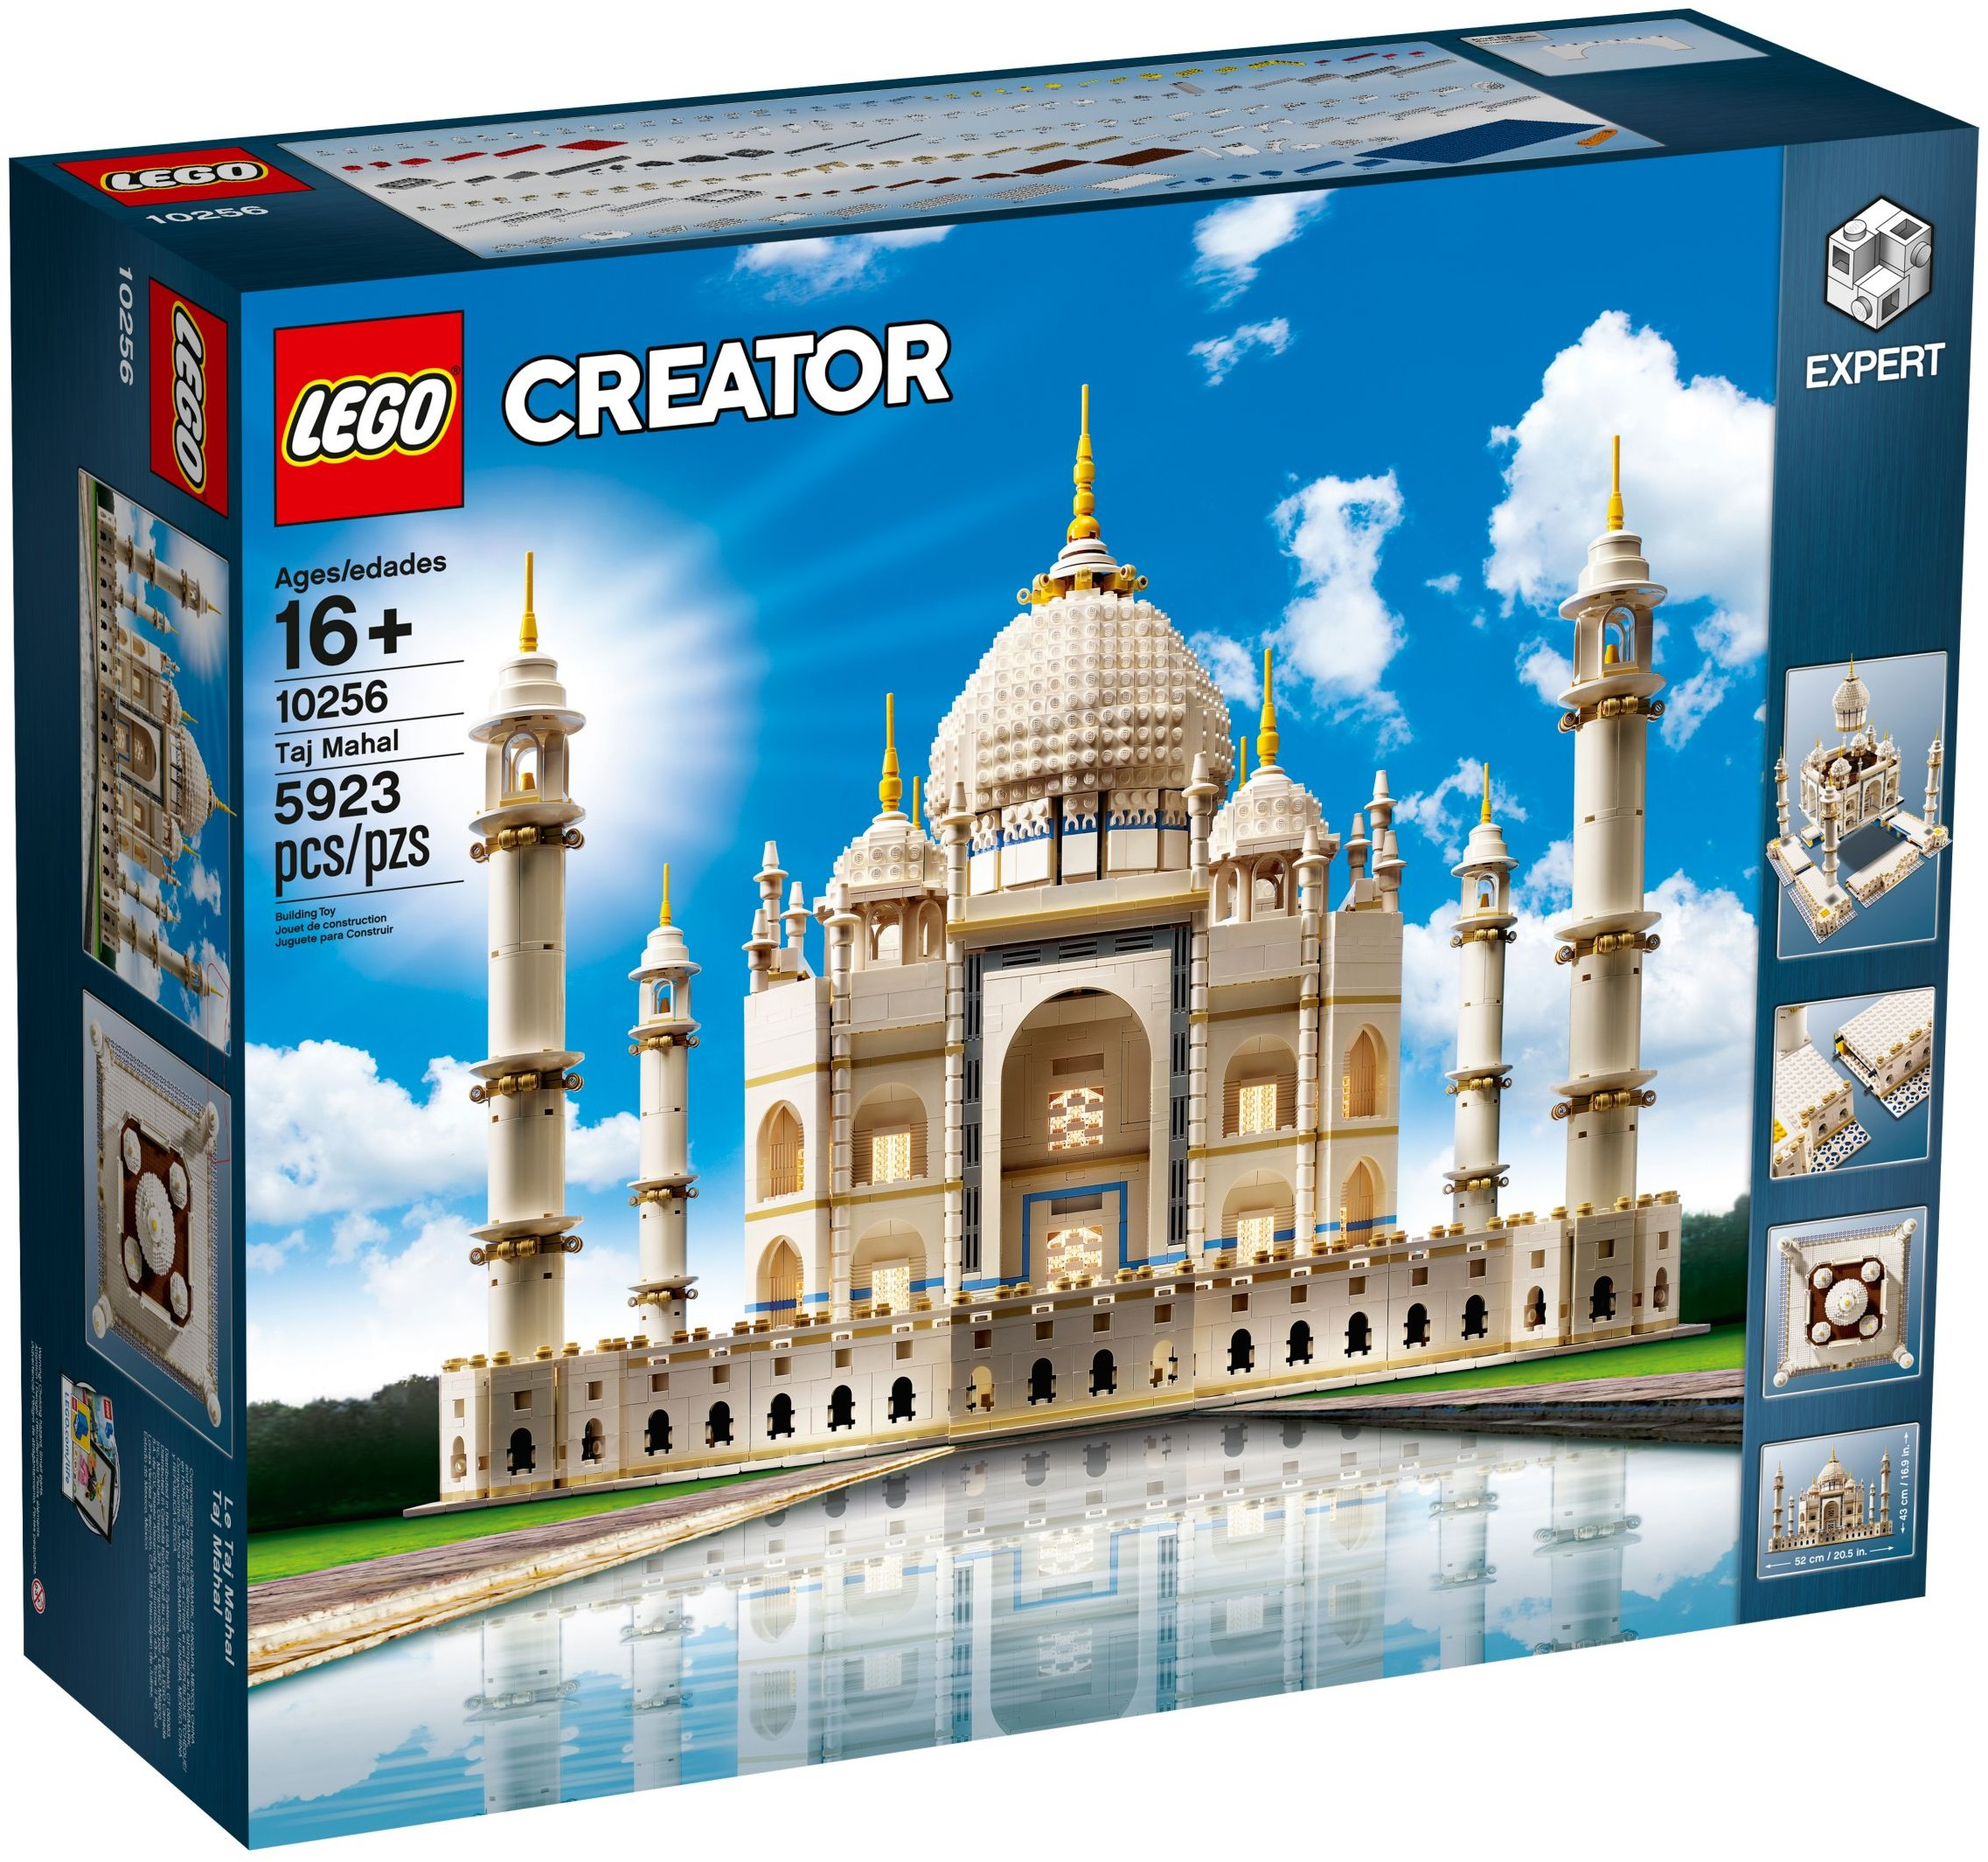 review 10256 taj mahal brickset lego set guide and database. Black Bedroom Furniture Sets. Home Design Ideas